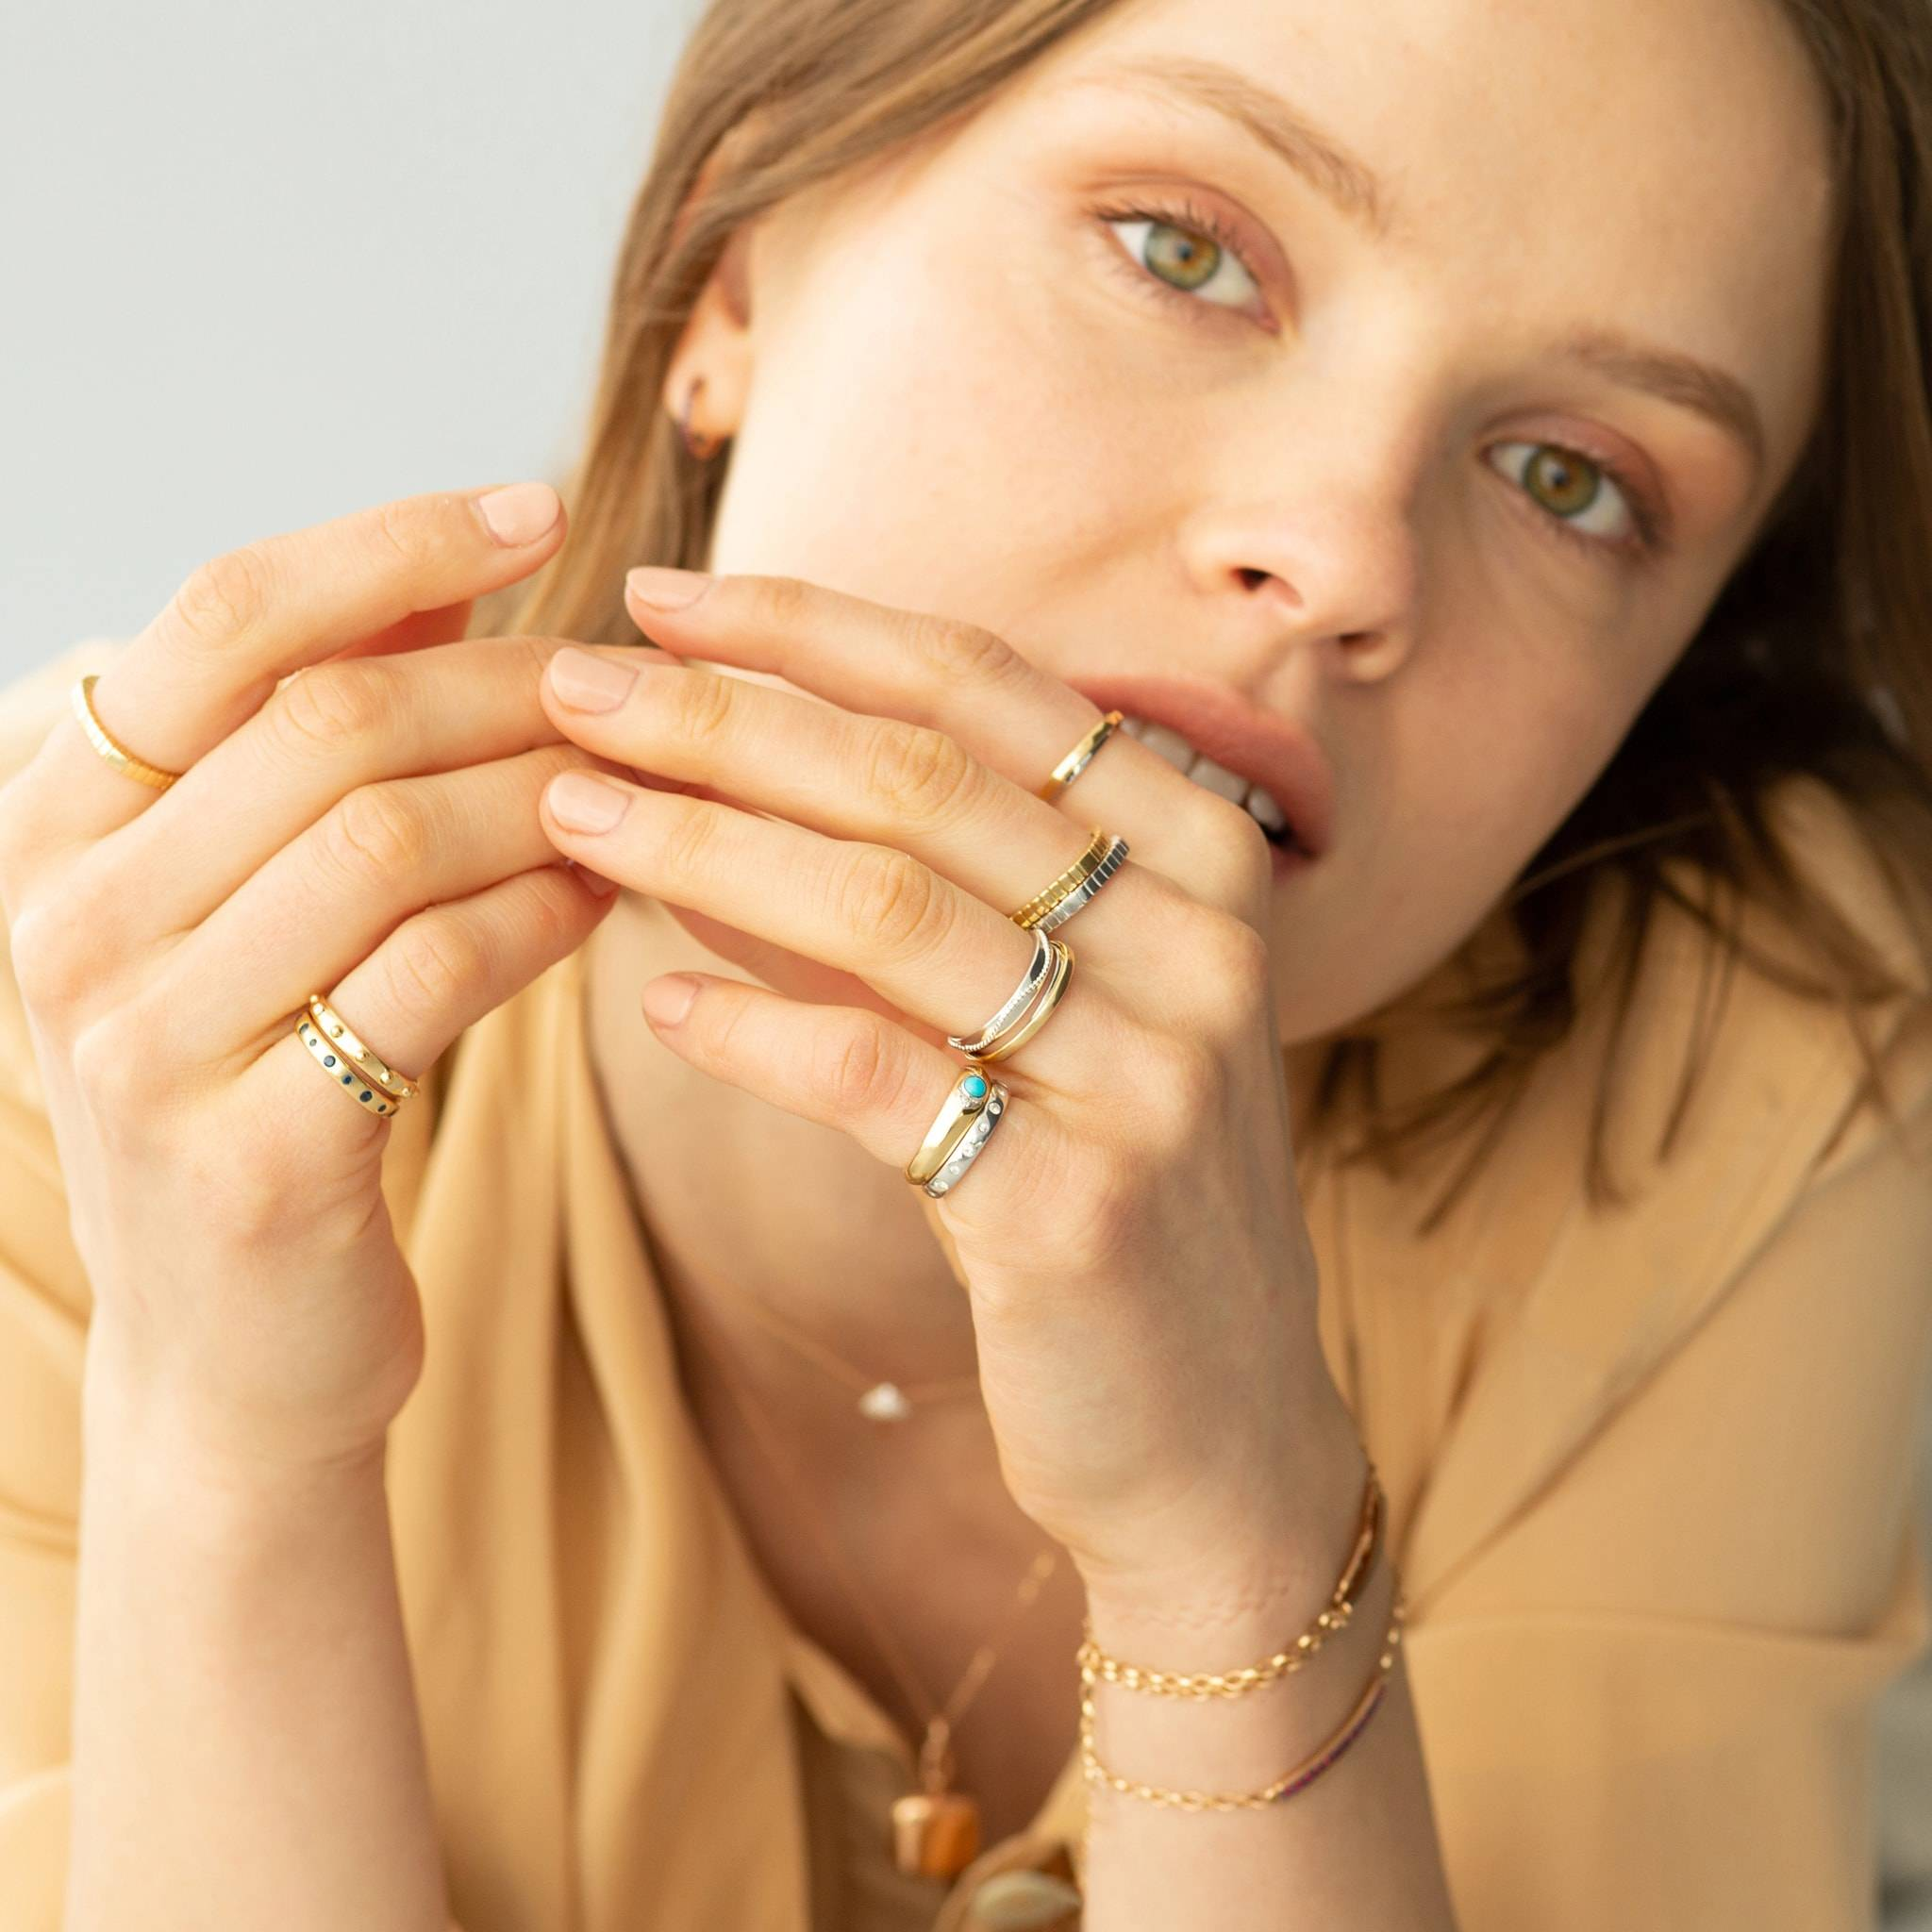 8 POESY RINGS TO EMPOWER YOU IN 2020